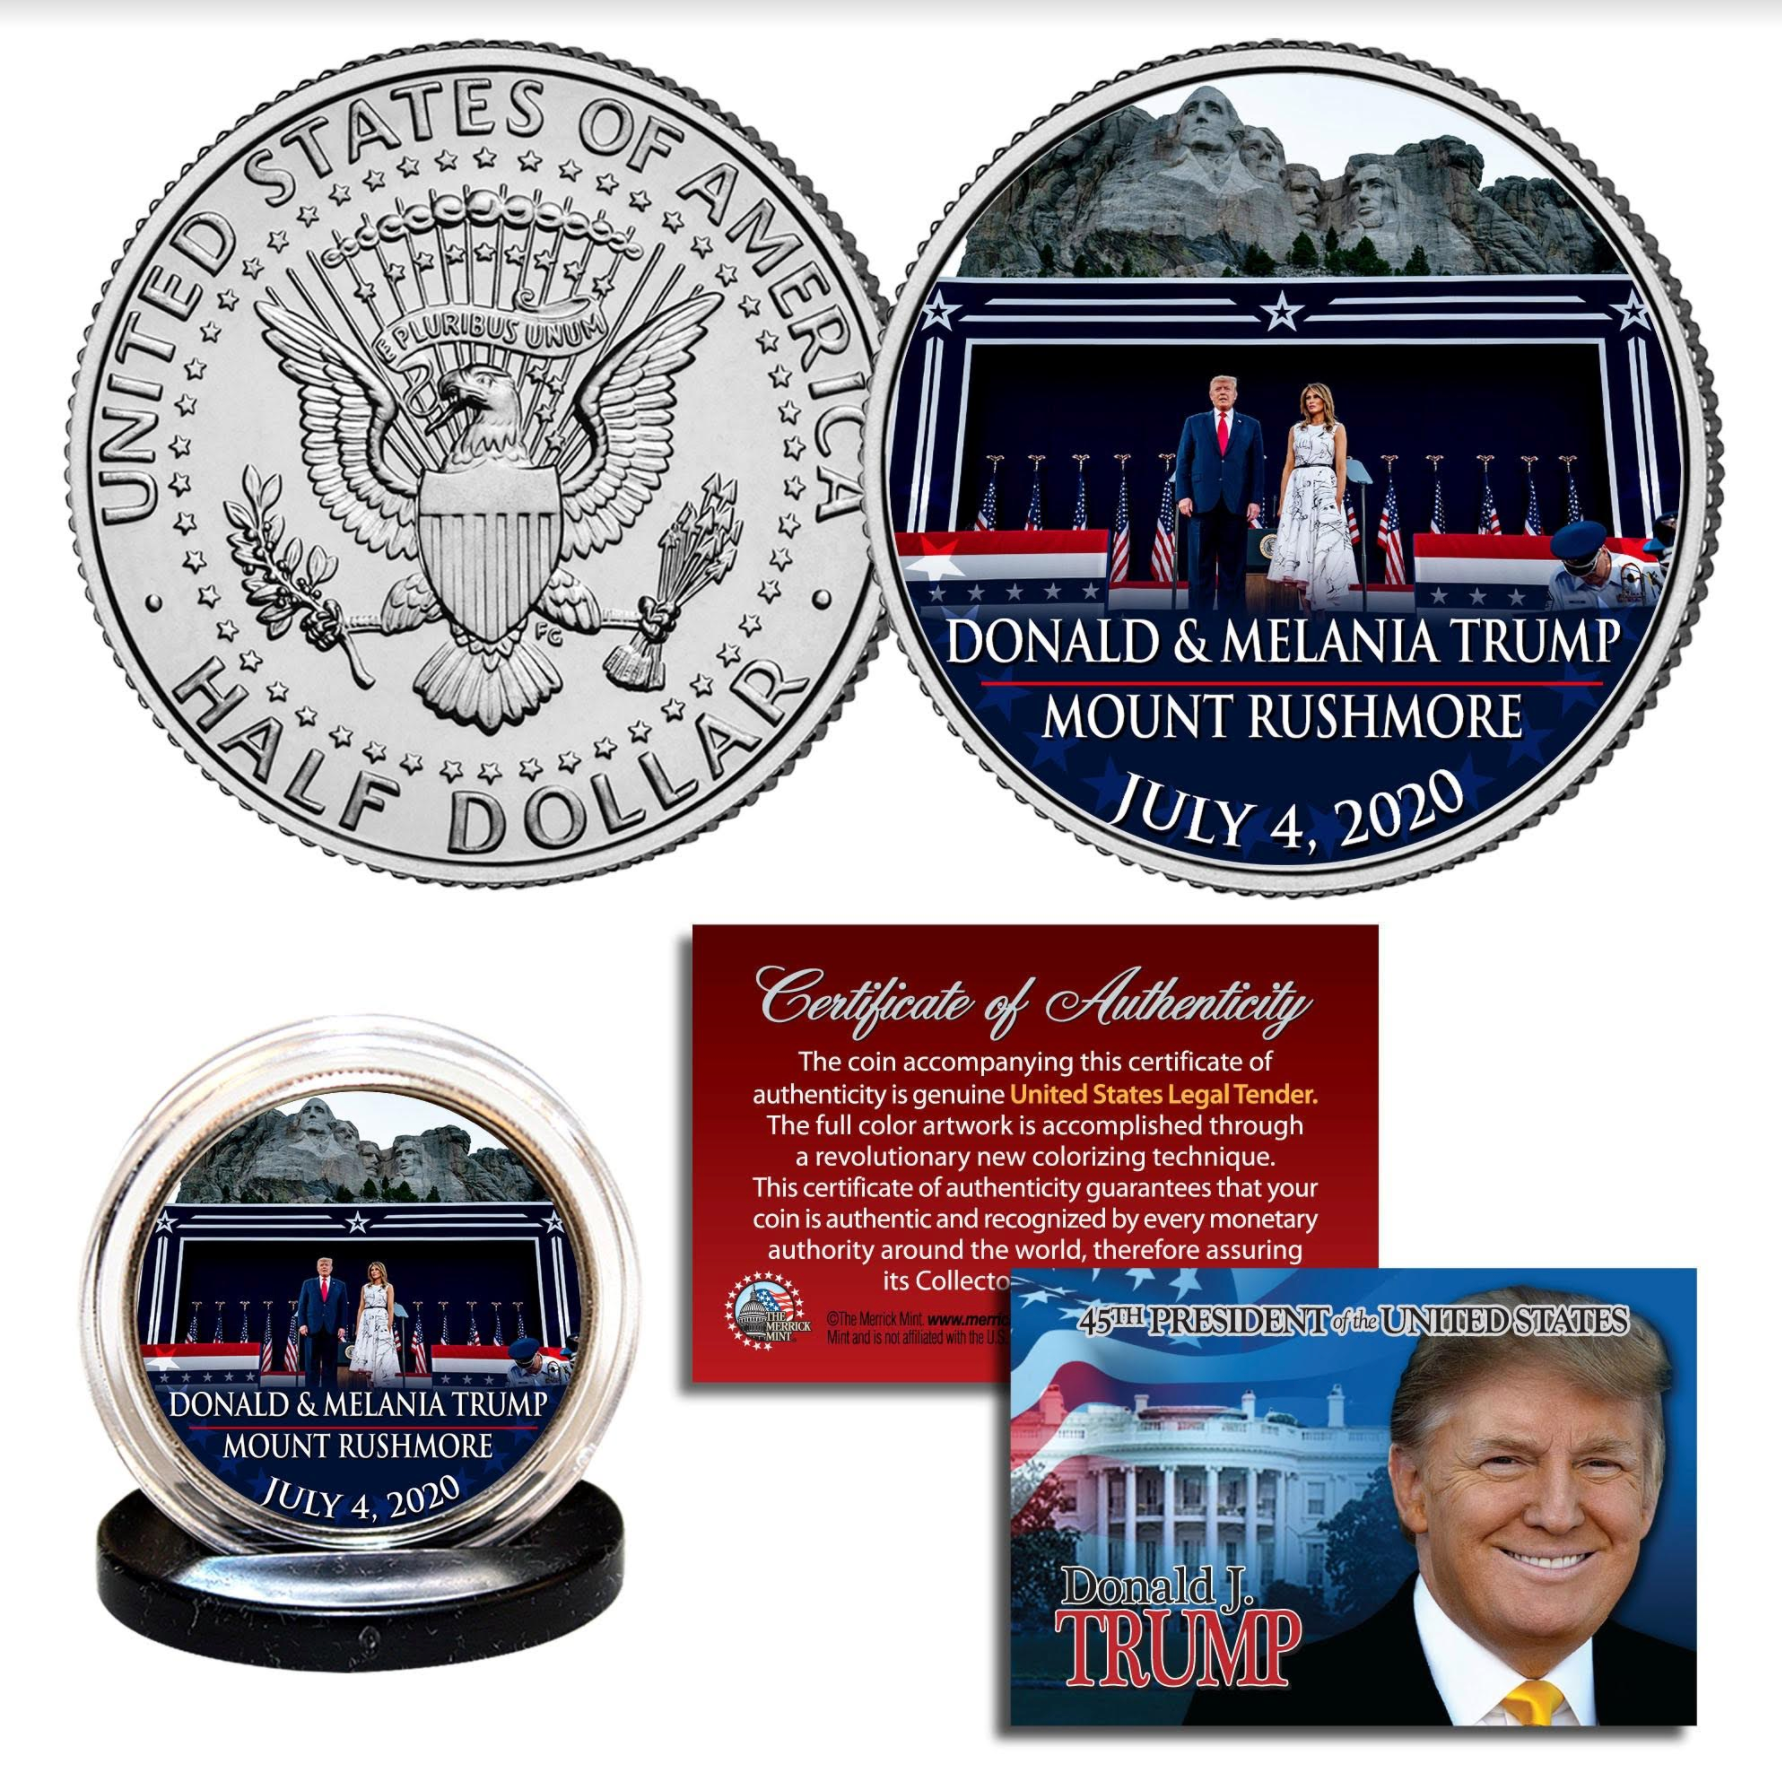 Donald & Melania Trump Mt. Rushmore Coin - I Love My Freedom